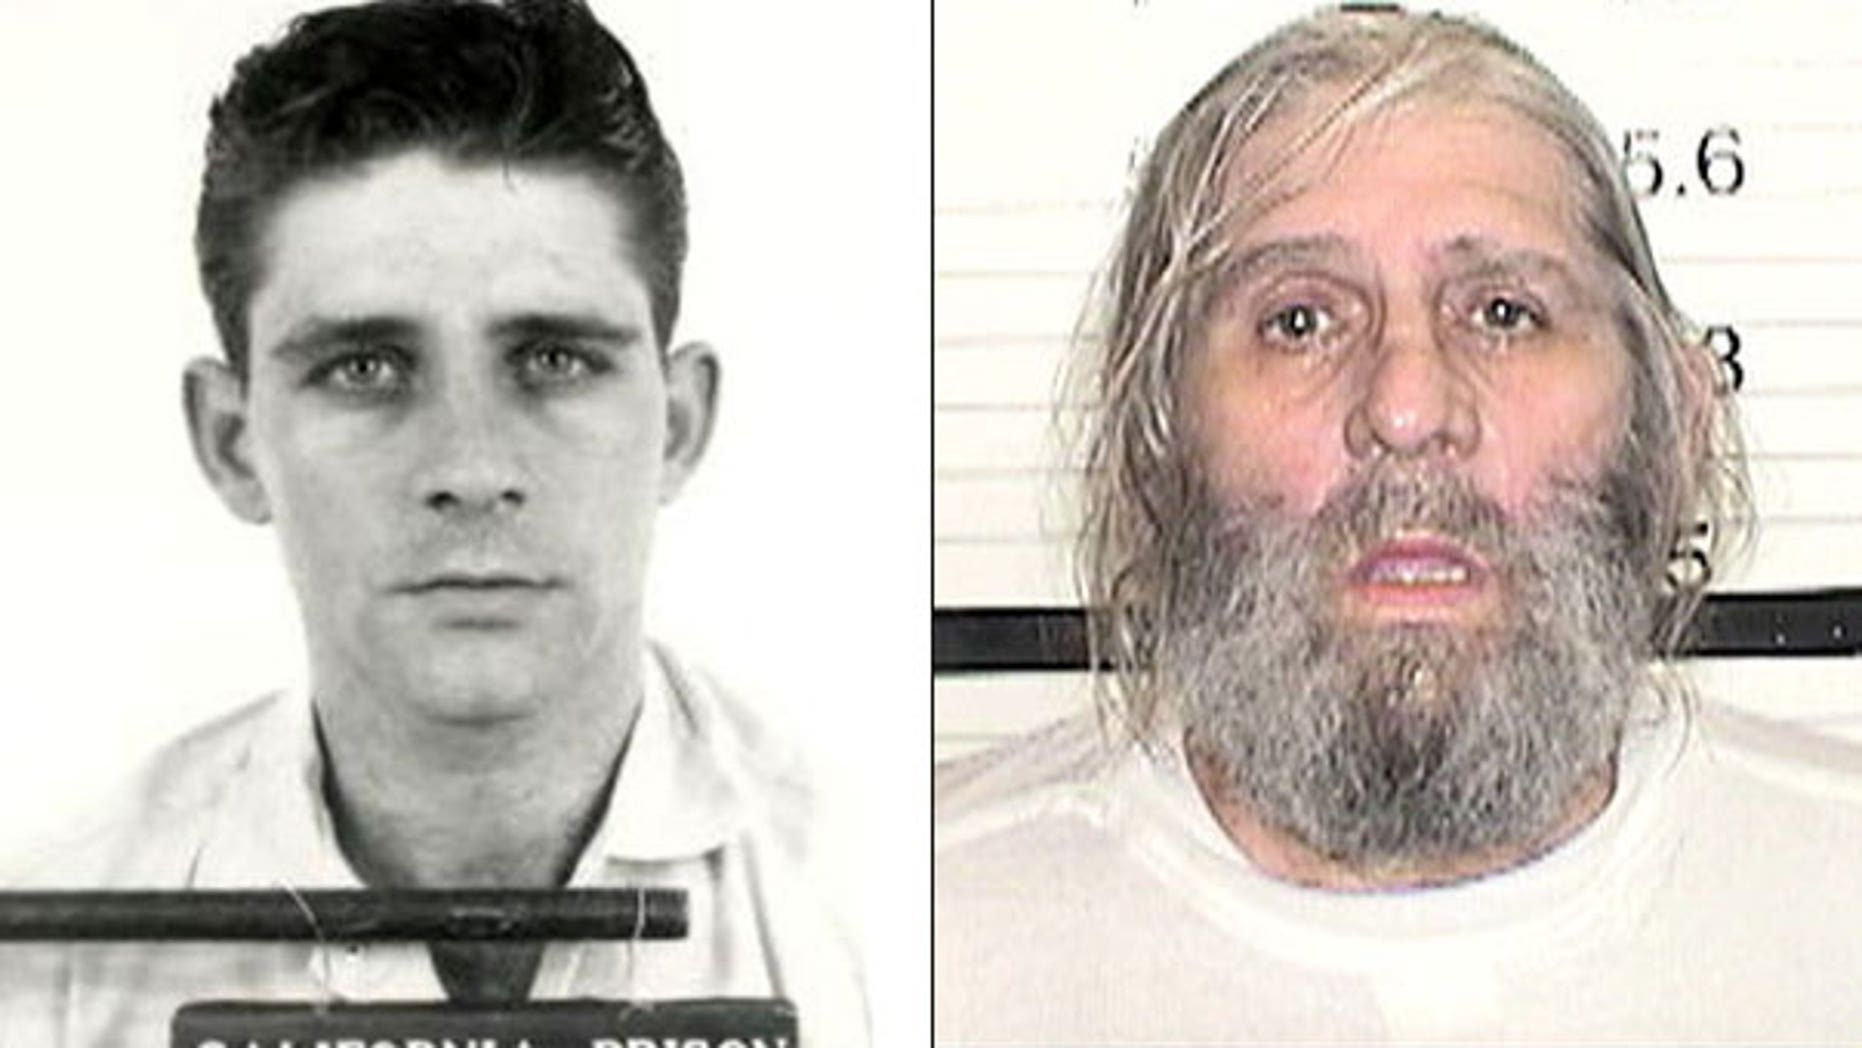 The photo on the left shows William Walter Asher III in 1967. The photo on the right shows Asher 36 years after he escaped from a California prison camp.